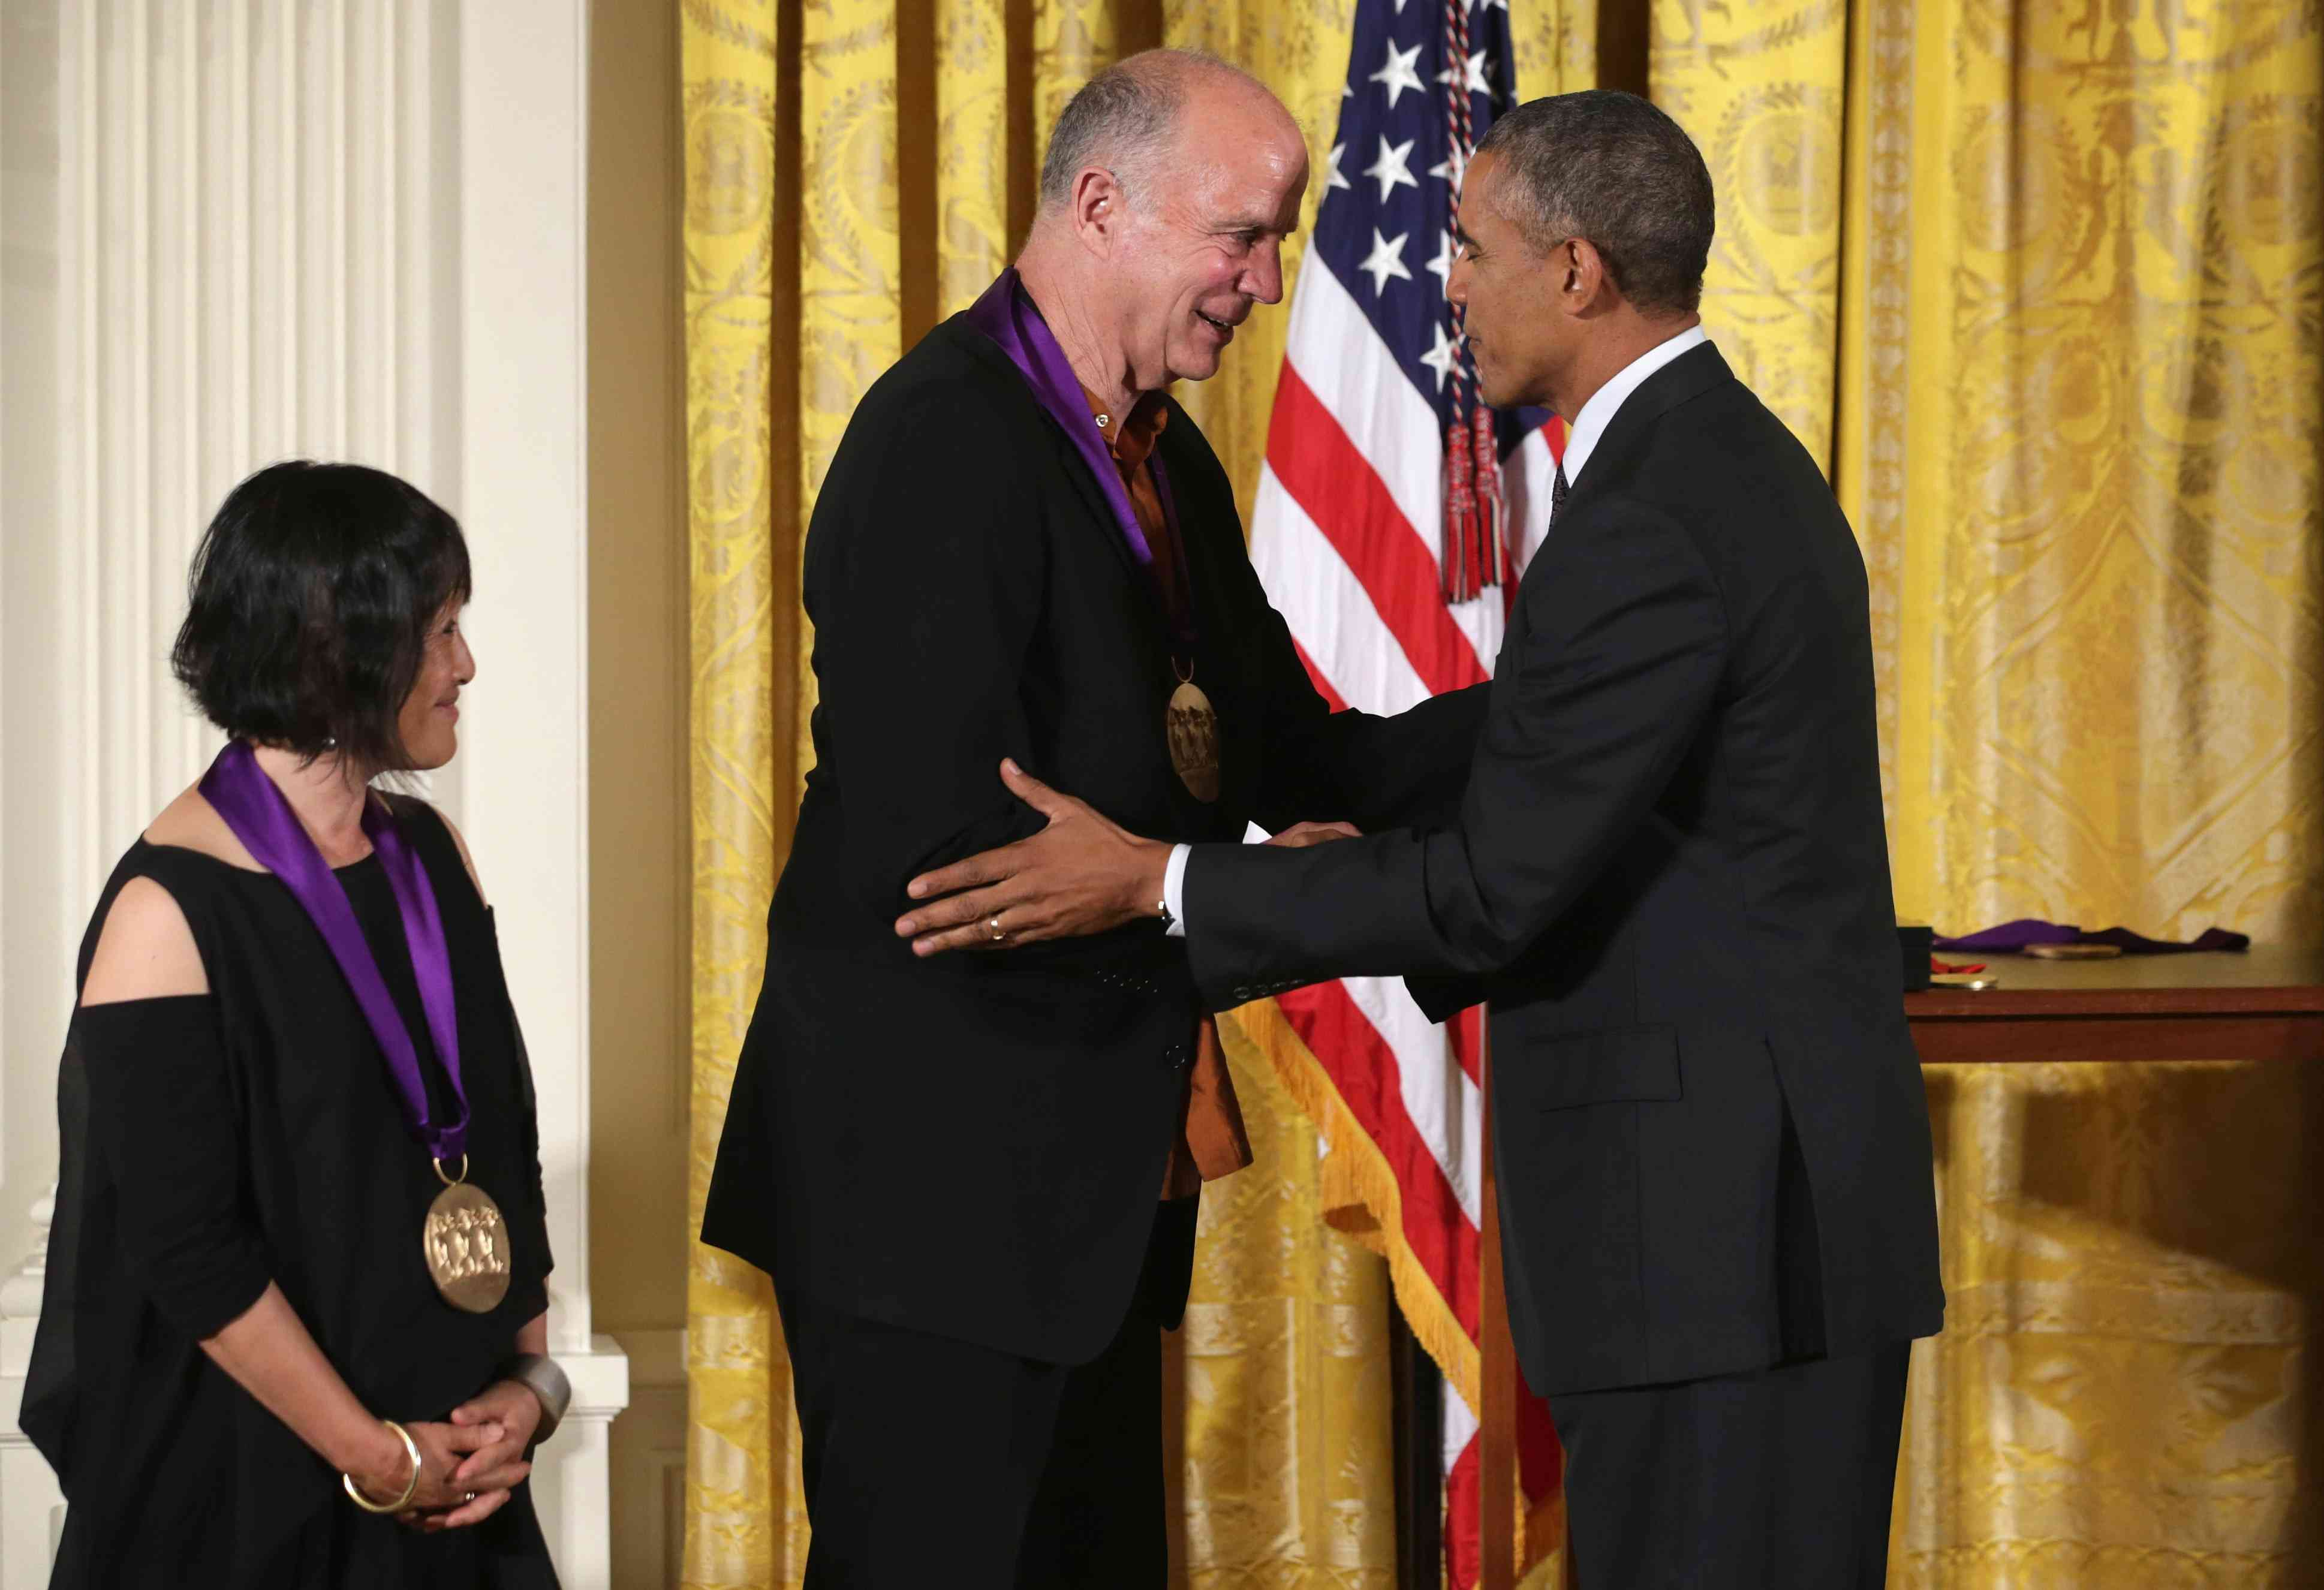 Obama awards 2013 National Medal Of Arts And National Humanities Medal to architect Billie Tsien (L) and Tod Williams (center).